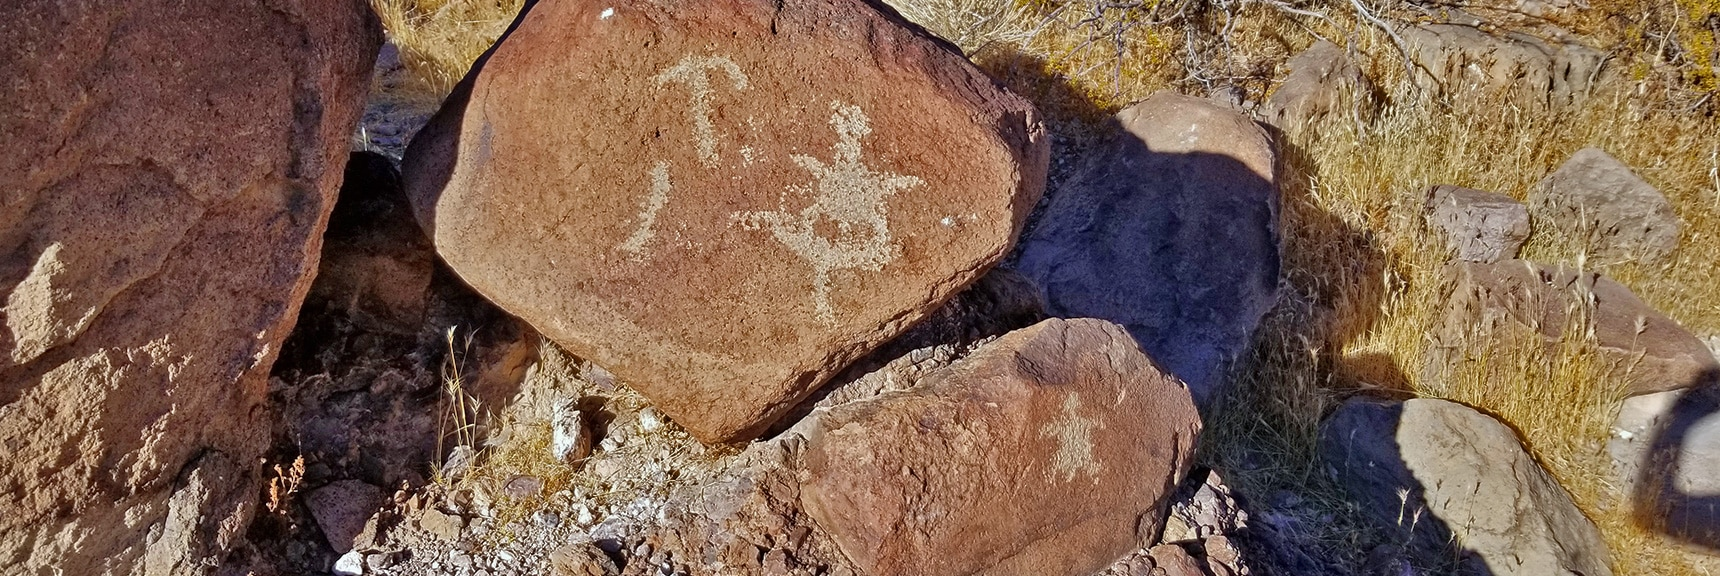 Figure Appears to Have Successfully Accomplished a Summit in Petroglyph Canyon Area | Petroglyph Canyon | Sloan Canyon National Conservation Area, Nevada